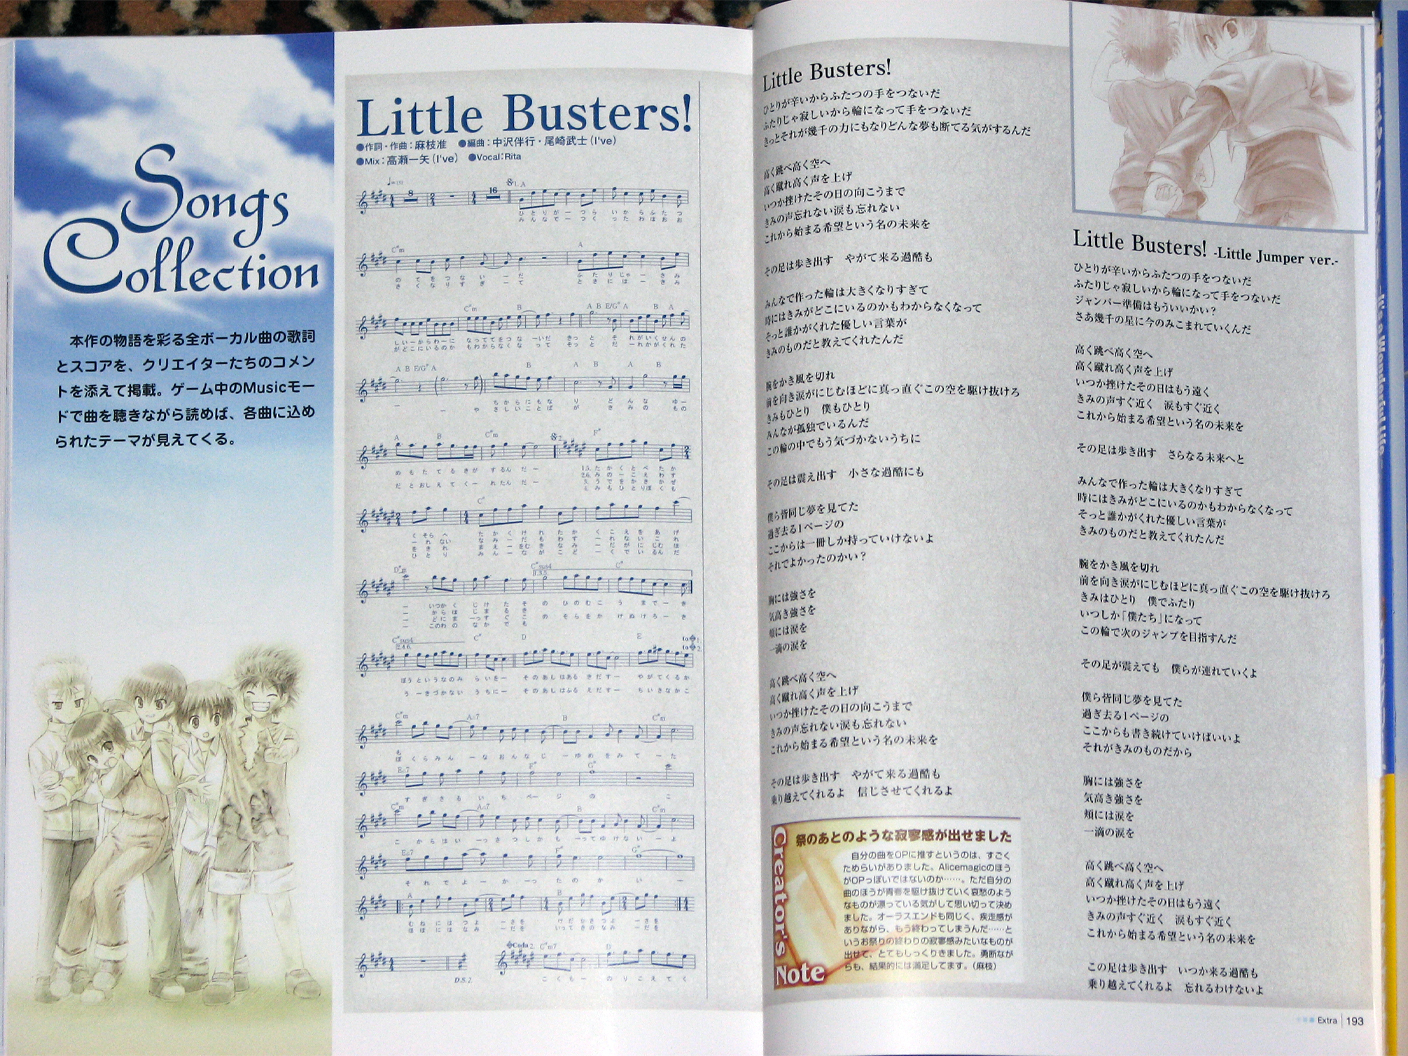 Little Busters! Songs Collection